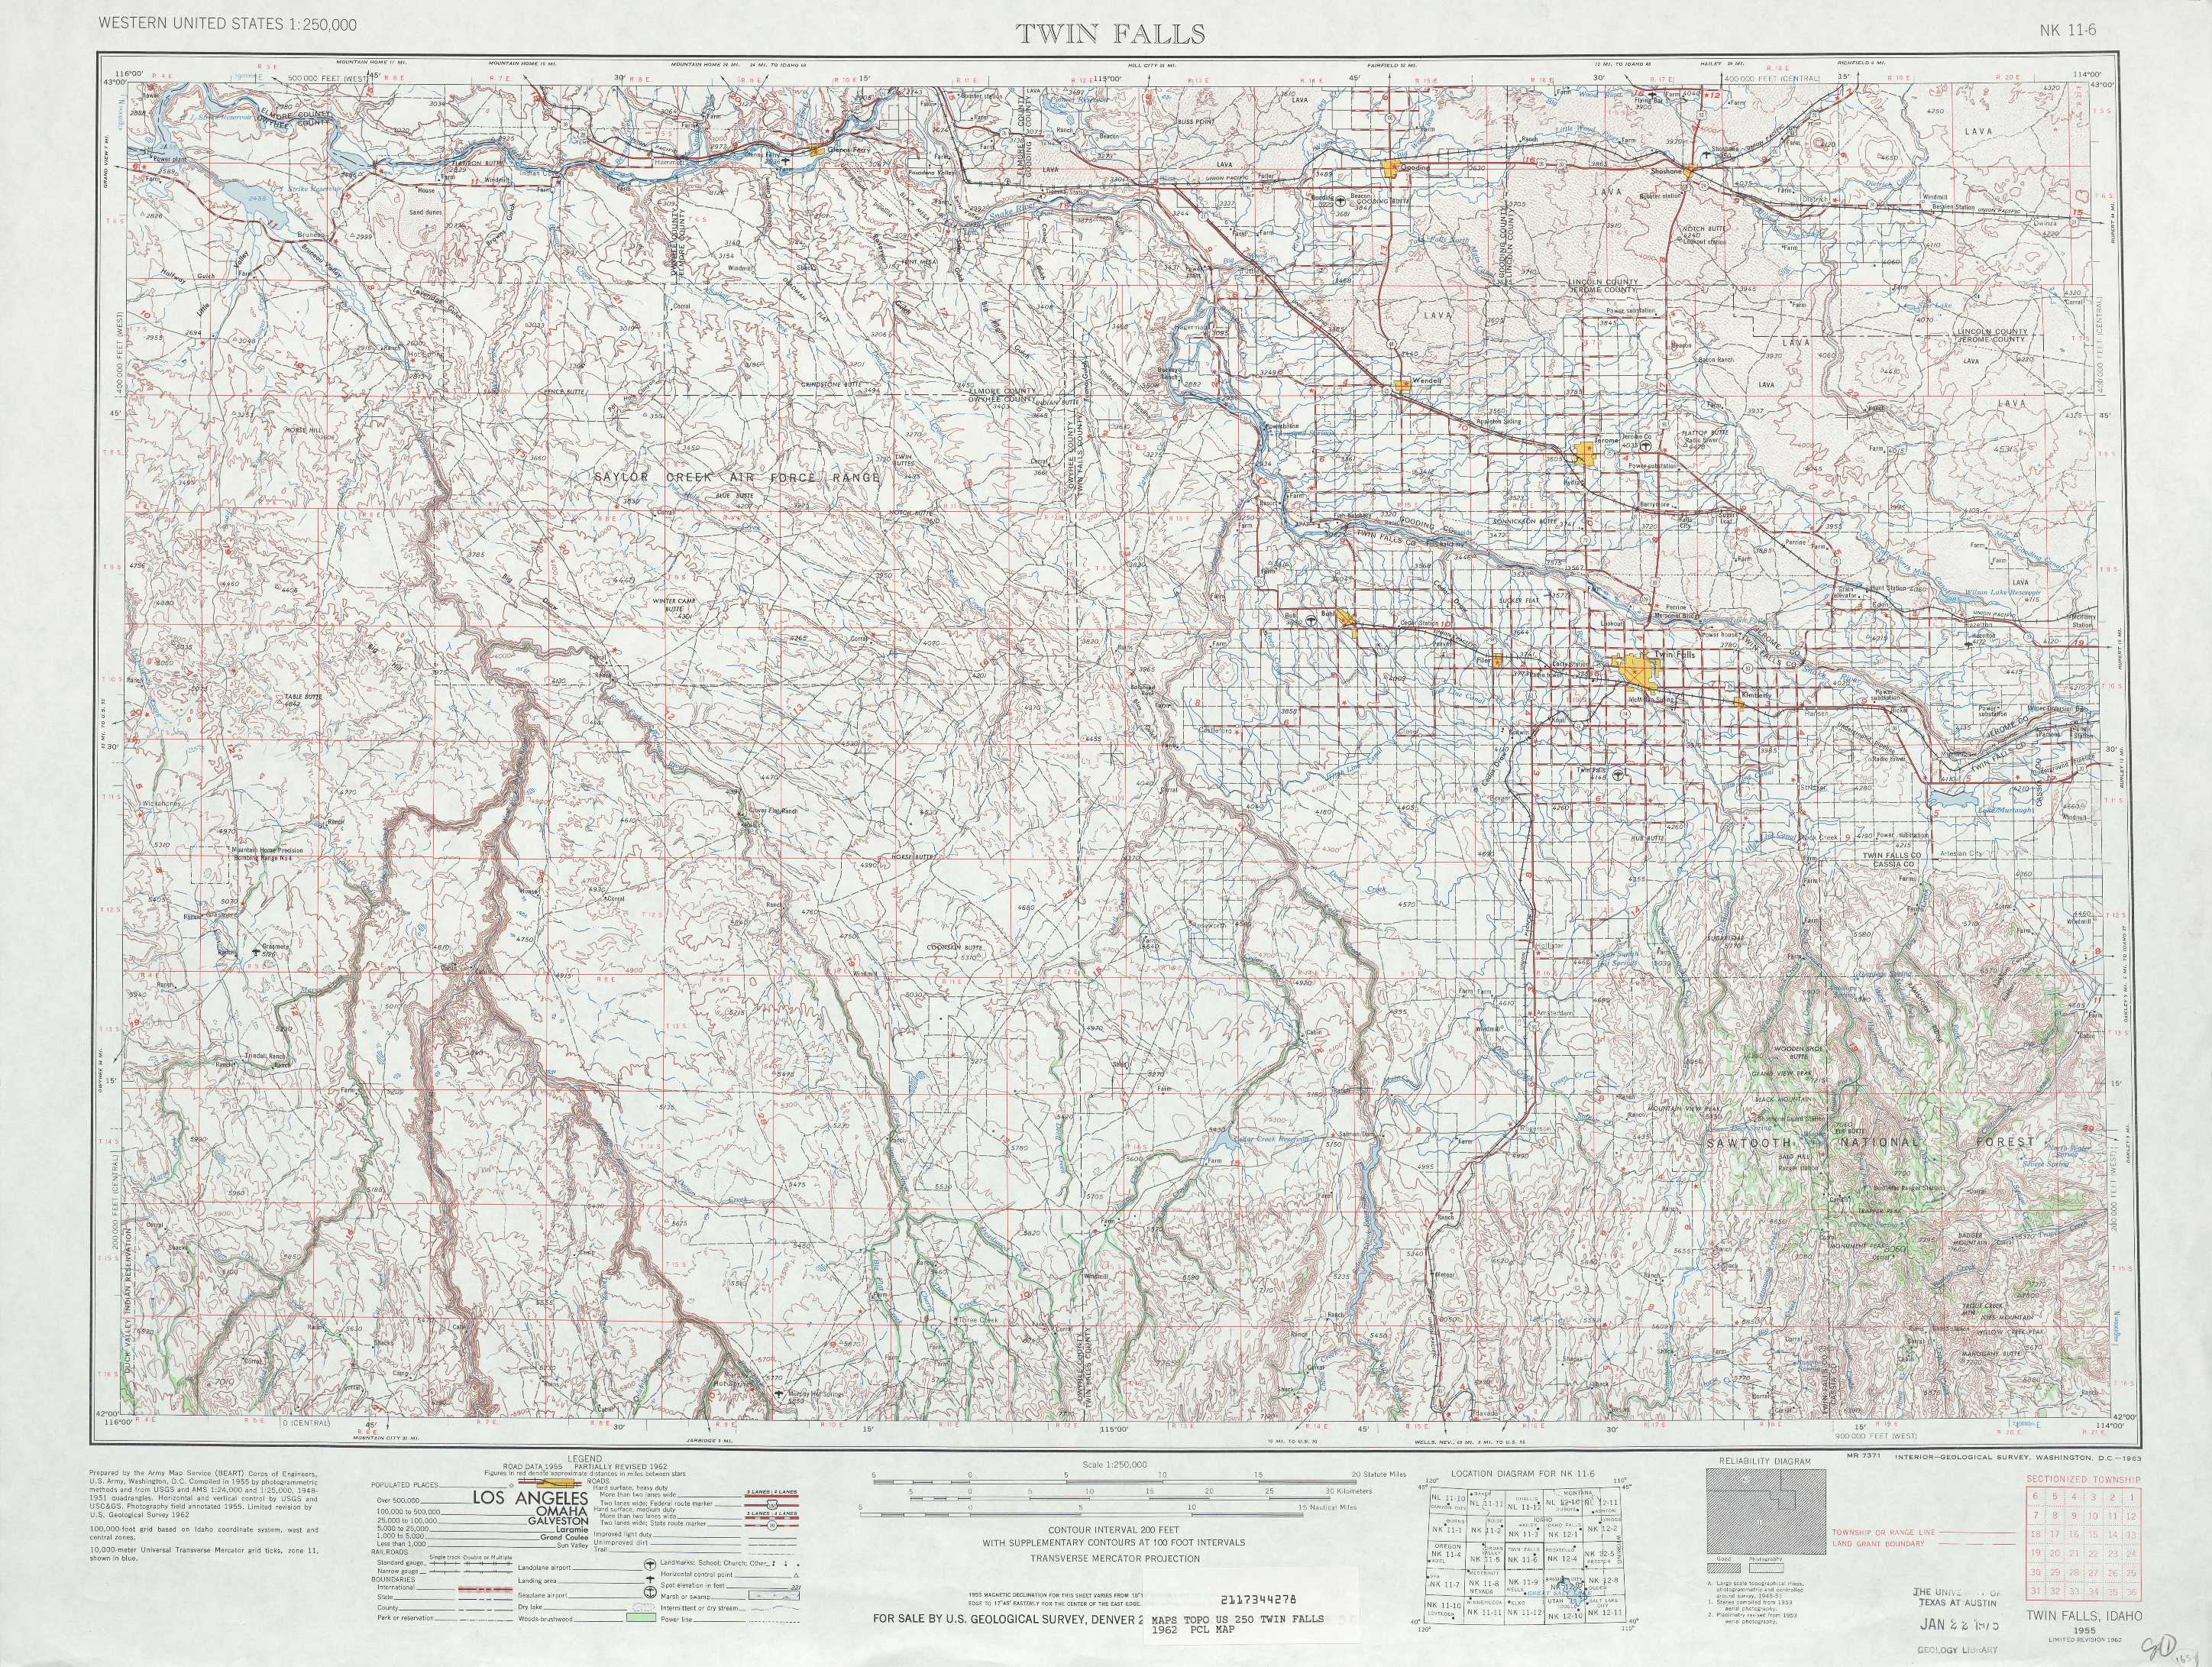 Twin Falls topographic maps ID USGS Topo Quad 42114a1 at 1